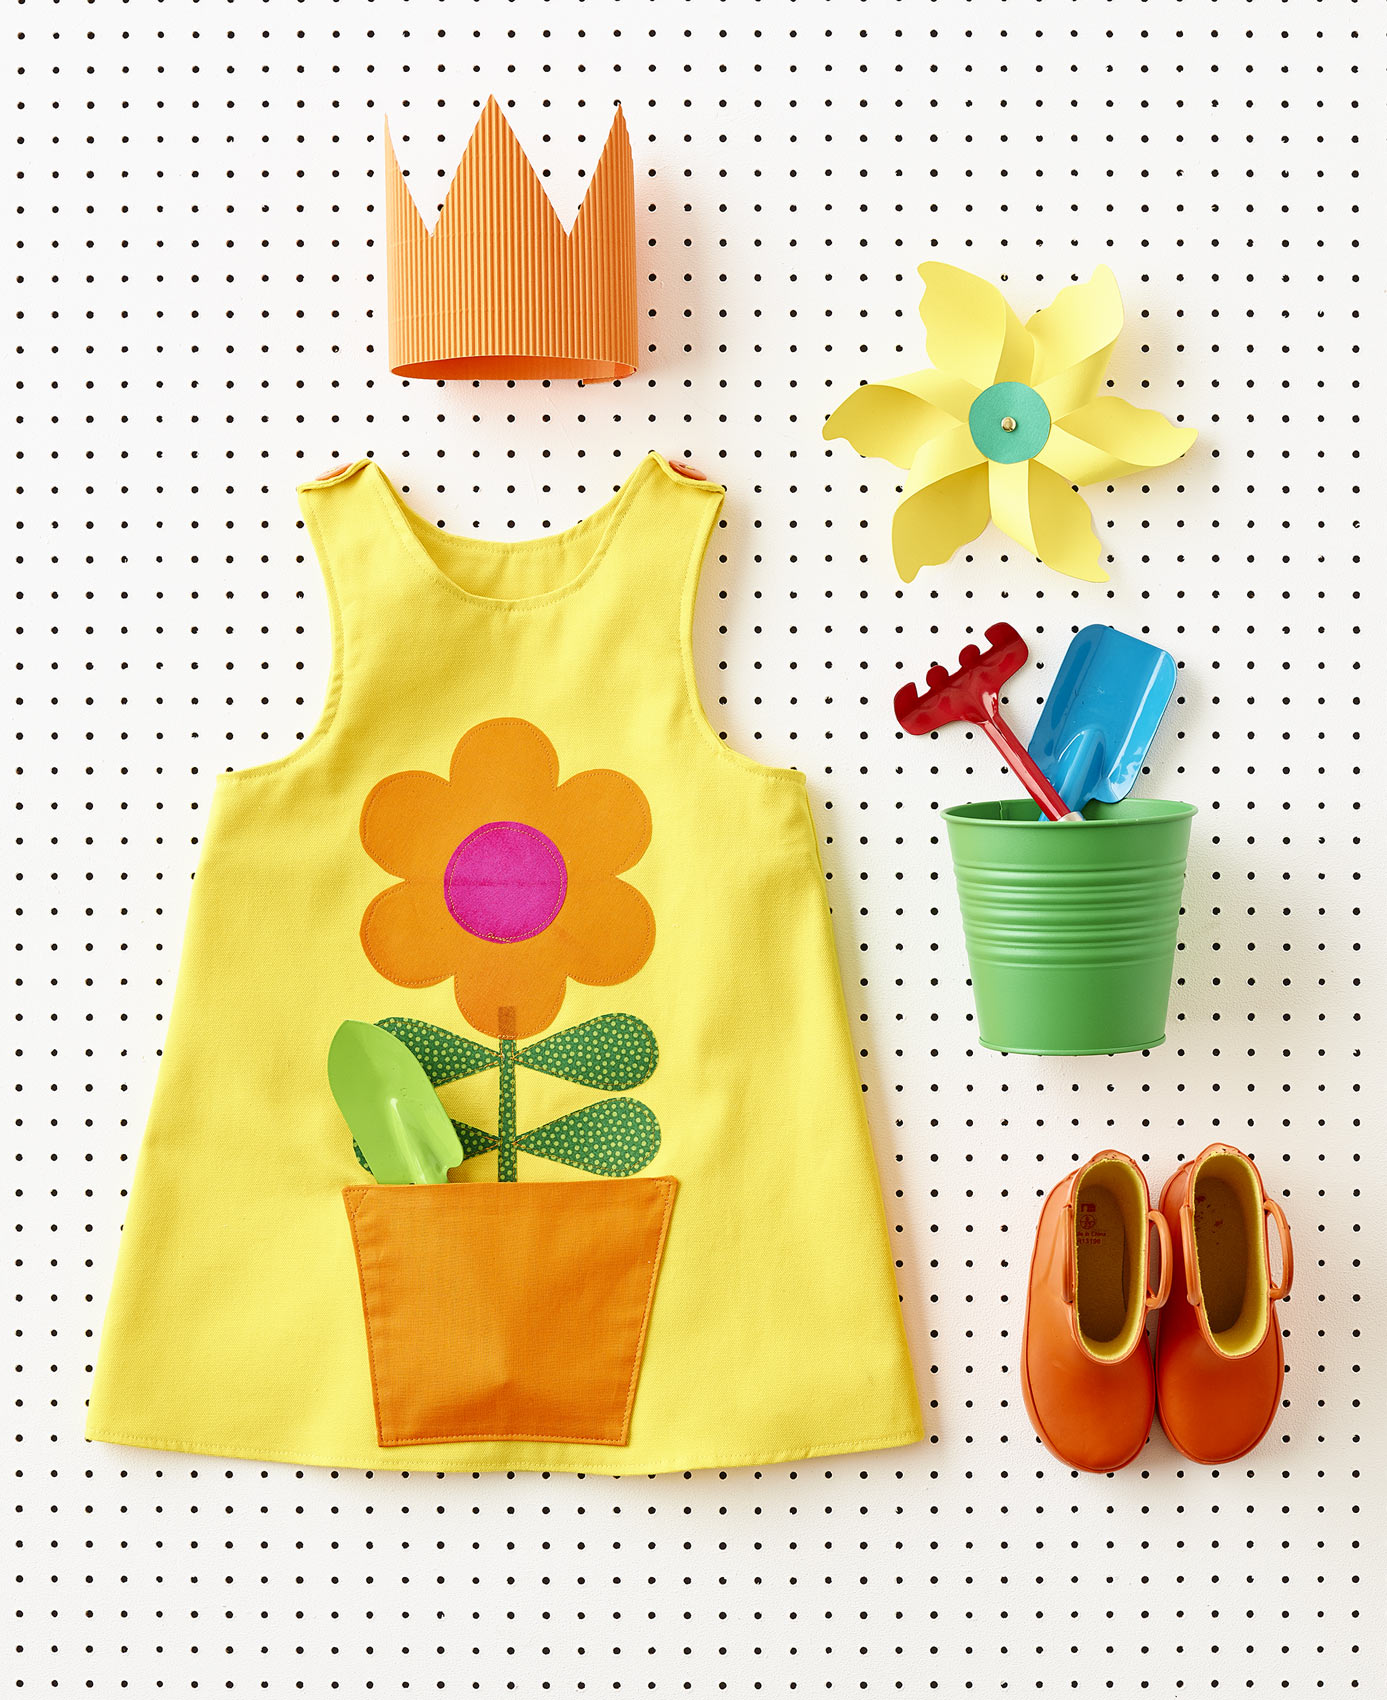 42-studio_flower_pot_dress_still-life-3